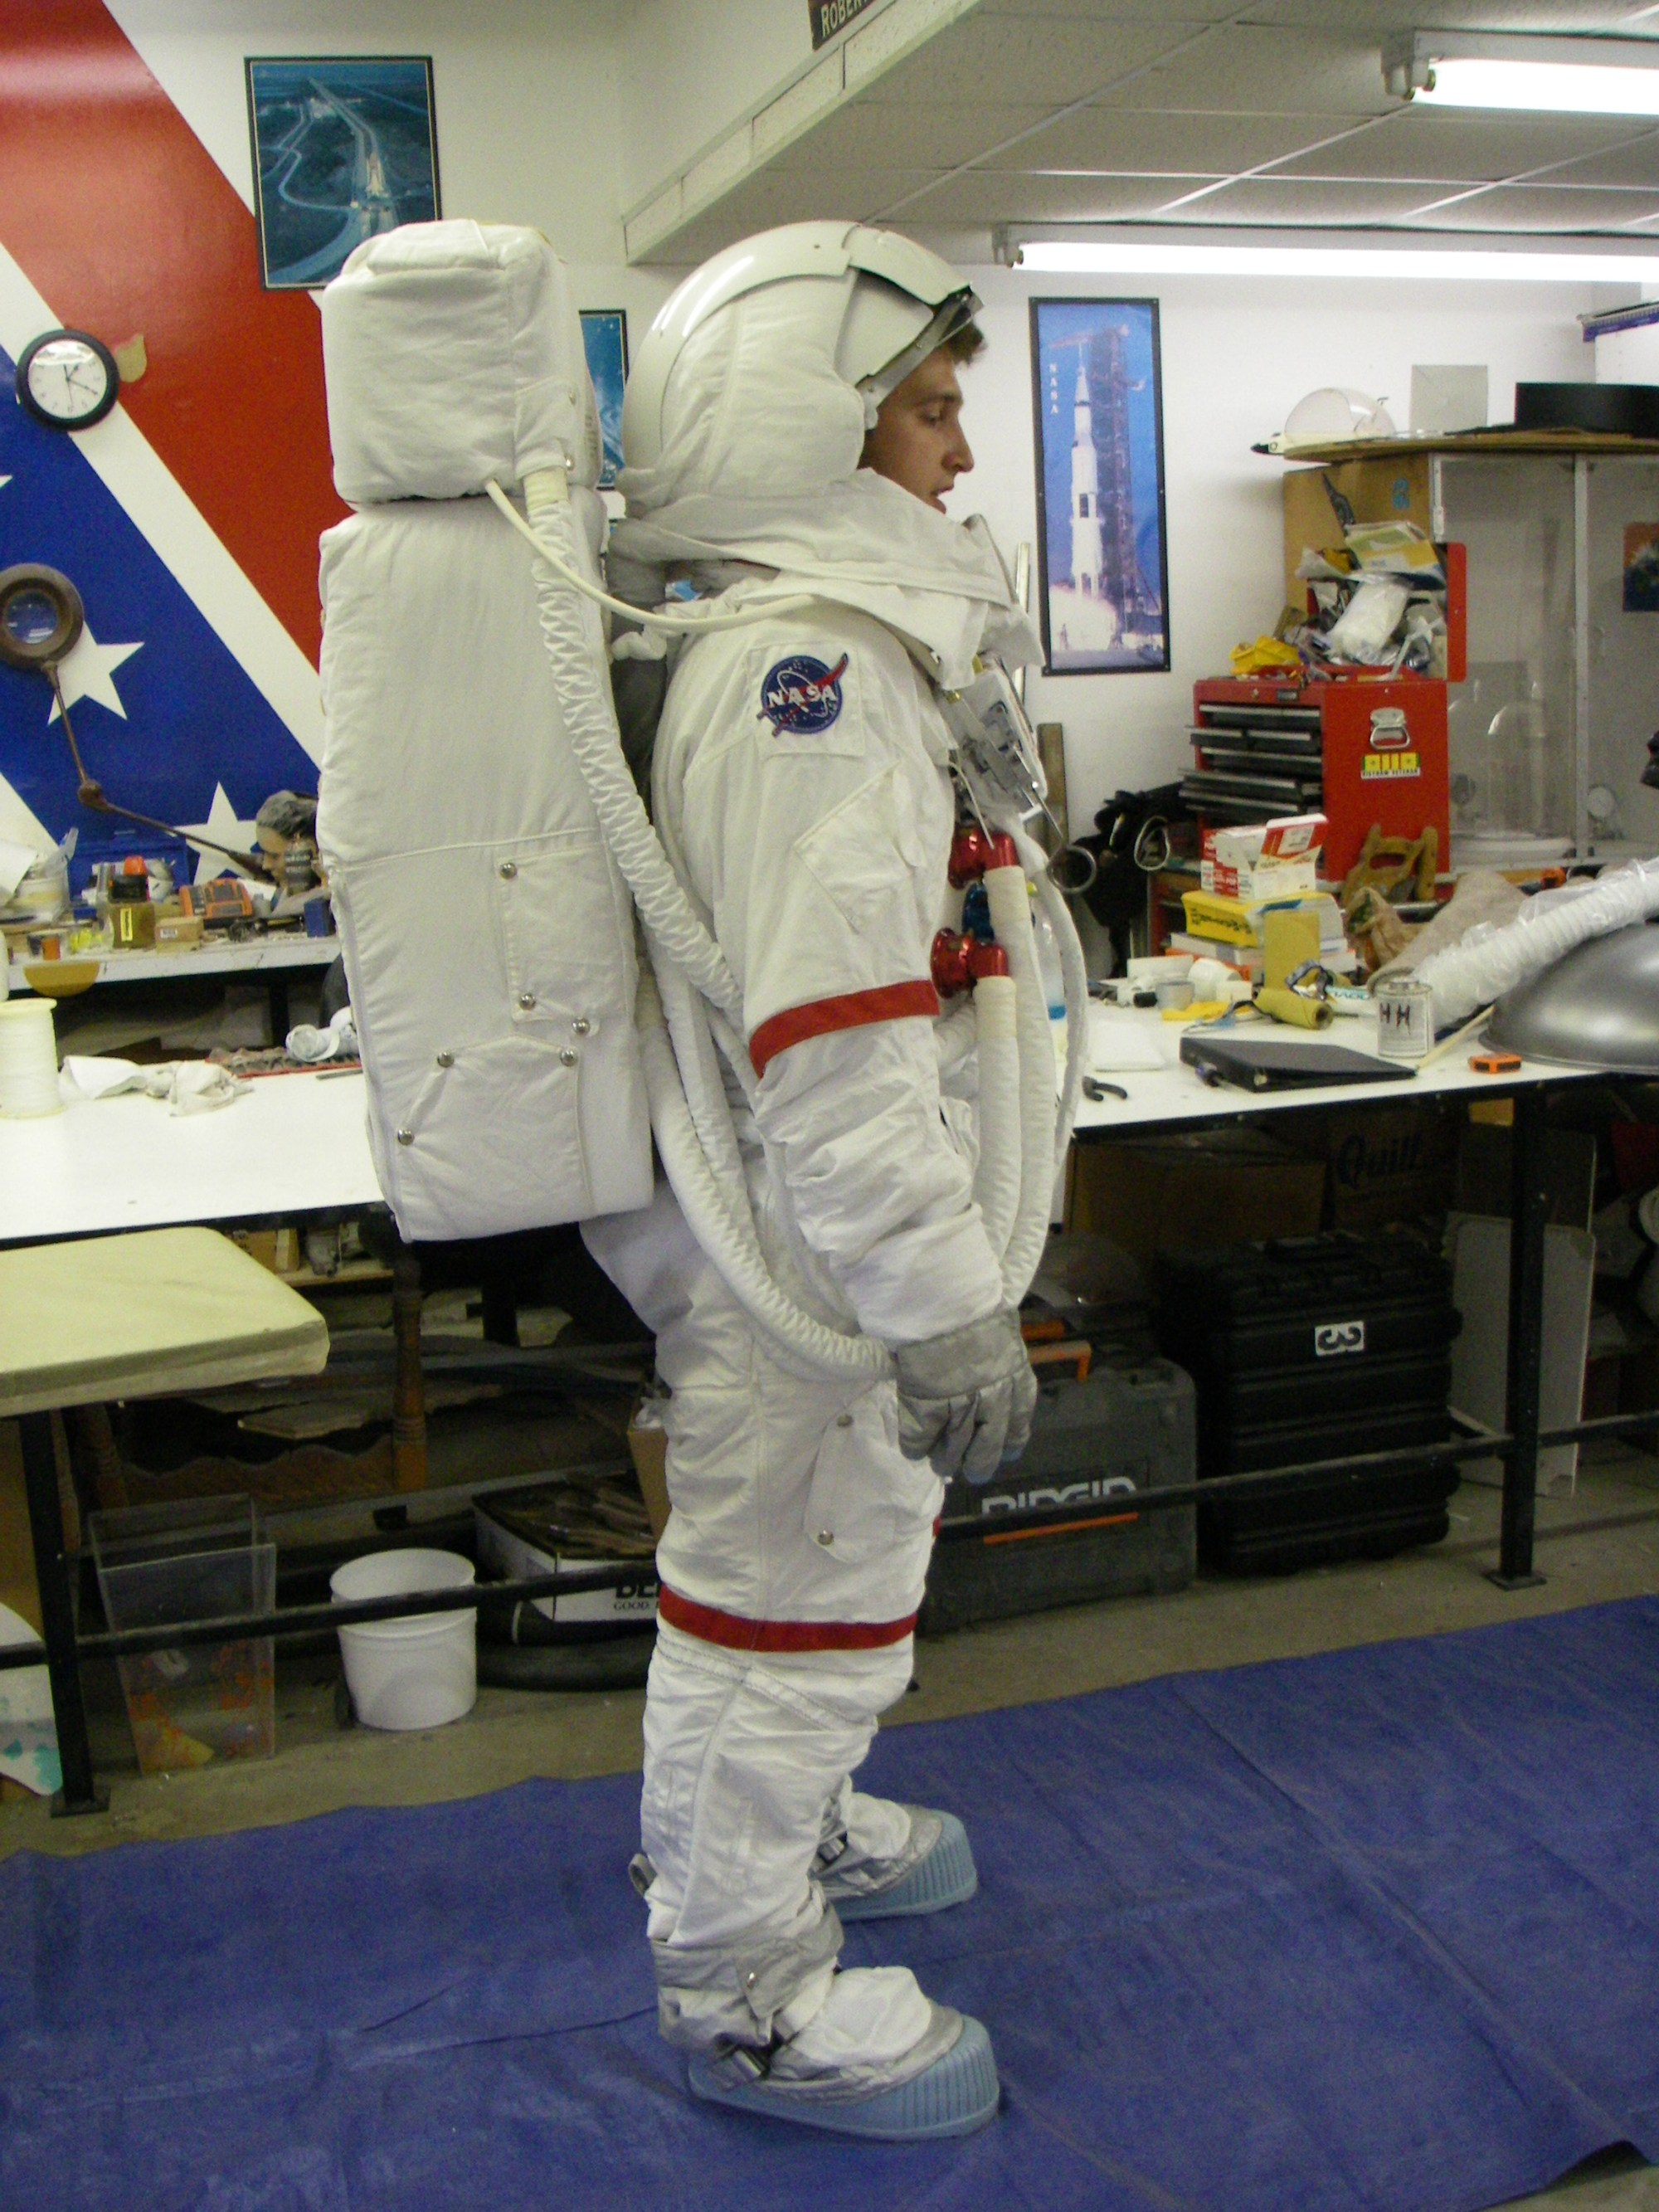 hight resolution of fact guard lee spacesuits can be found in displays at the smithsonian hamilton sundstrand and madame tussaud s wax museum